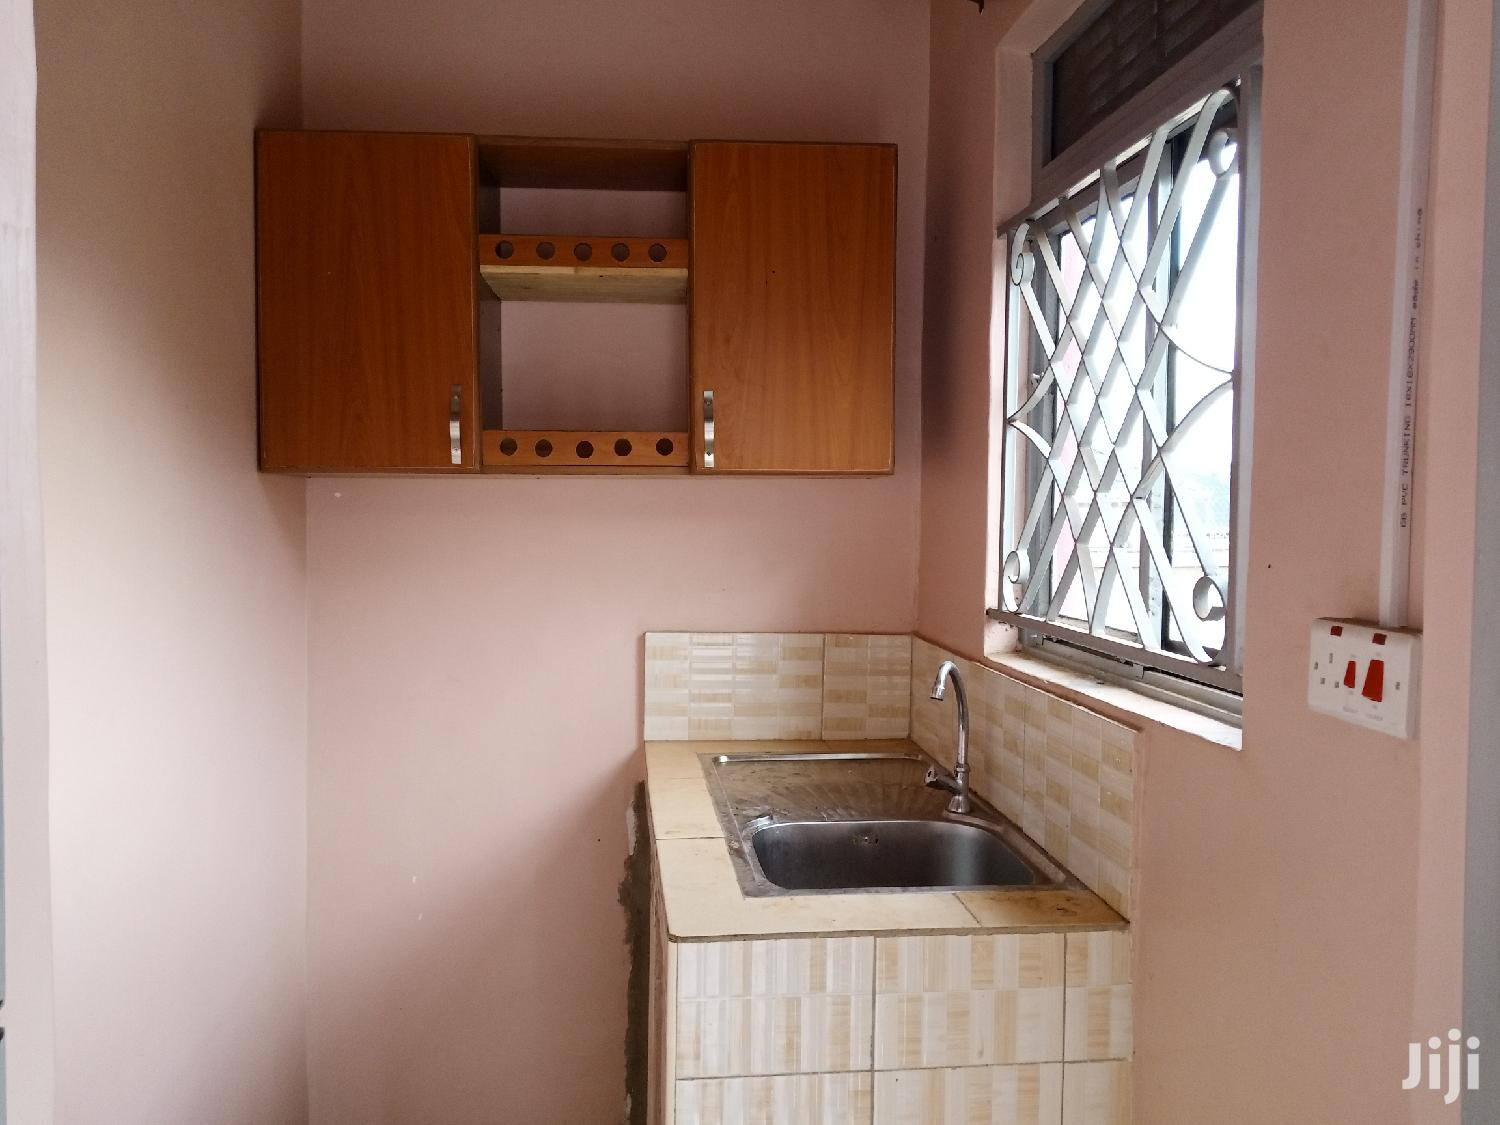 Two Bedroom House In Namugongo For Rent | Houses & Apartments For Rent for sale in Kampala, Central Region, Uganda